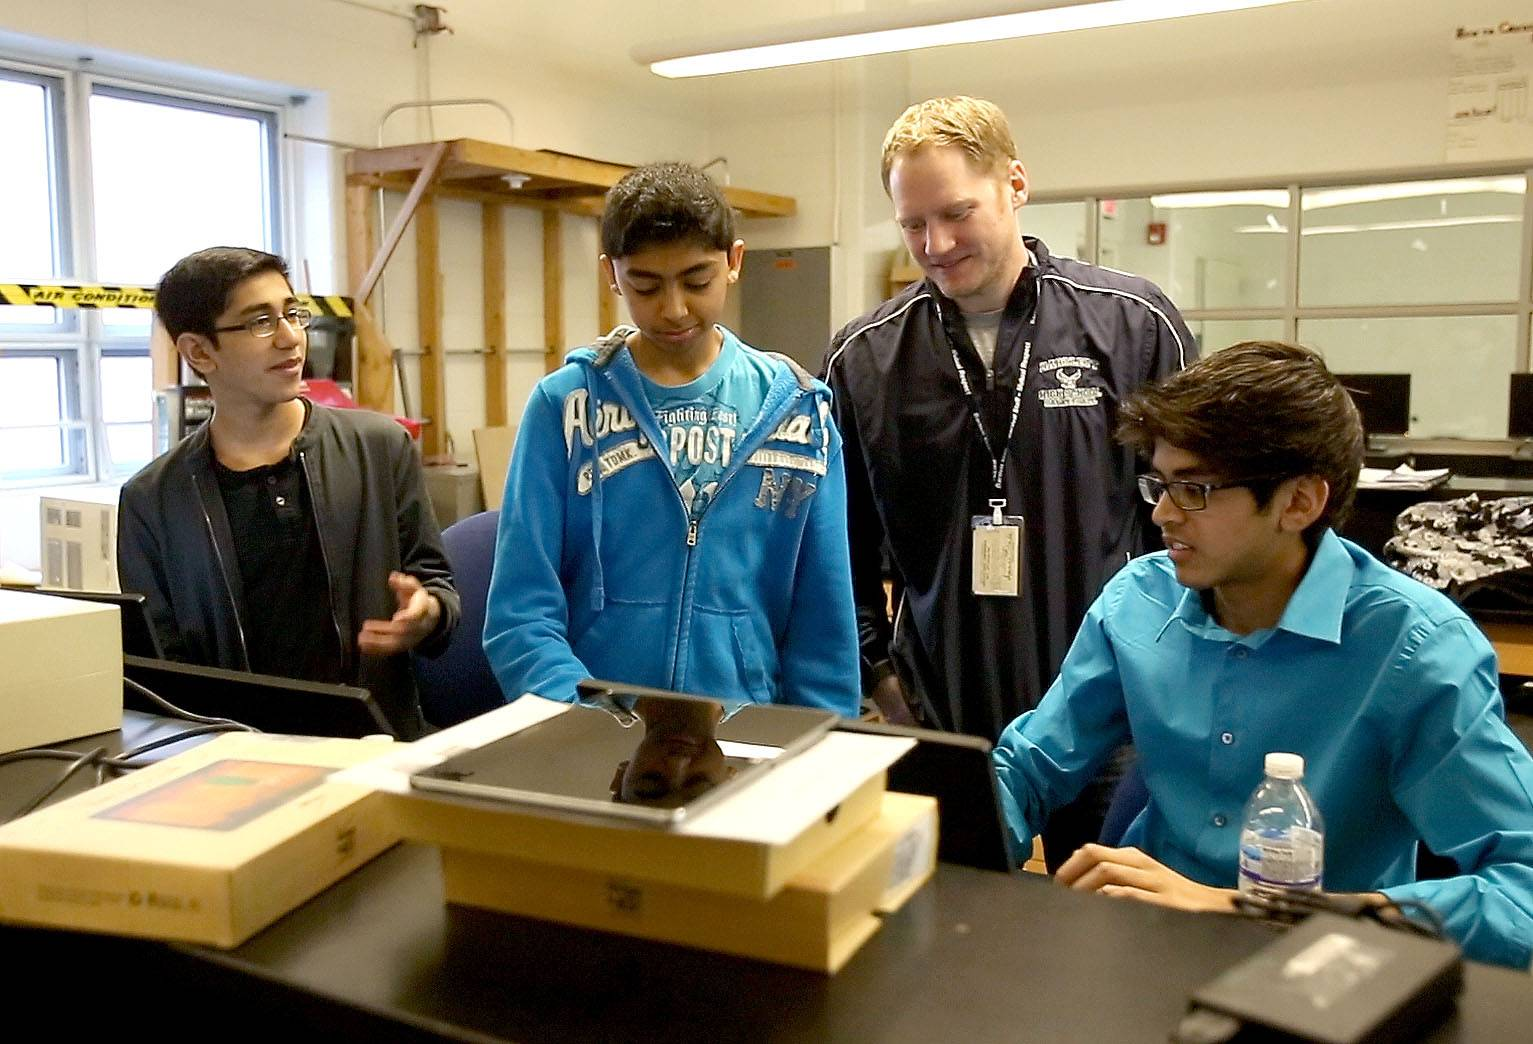 Bartlett teacher Phil Church, center, encourages students Purav Shah, left, Shil Shah and Amar Patel, right.